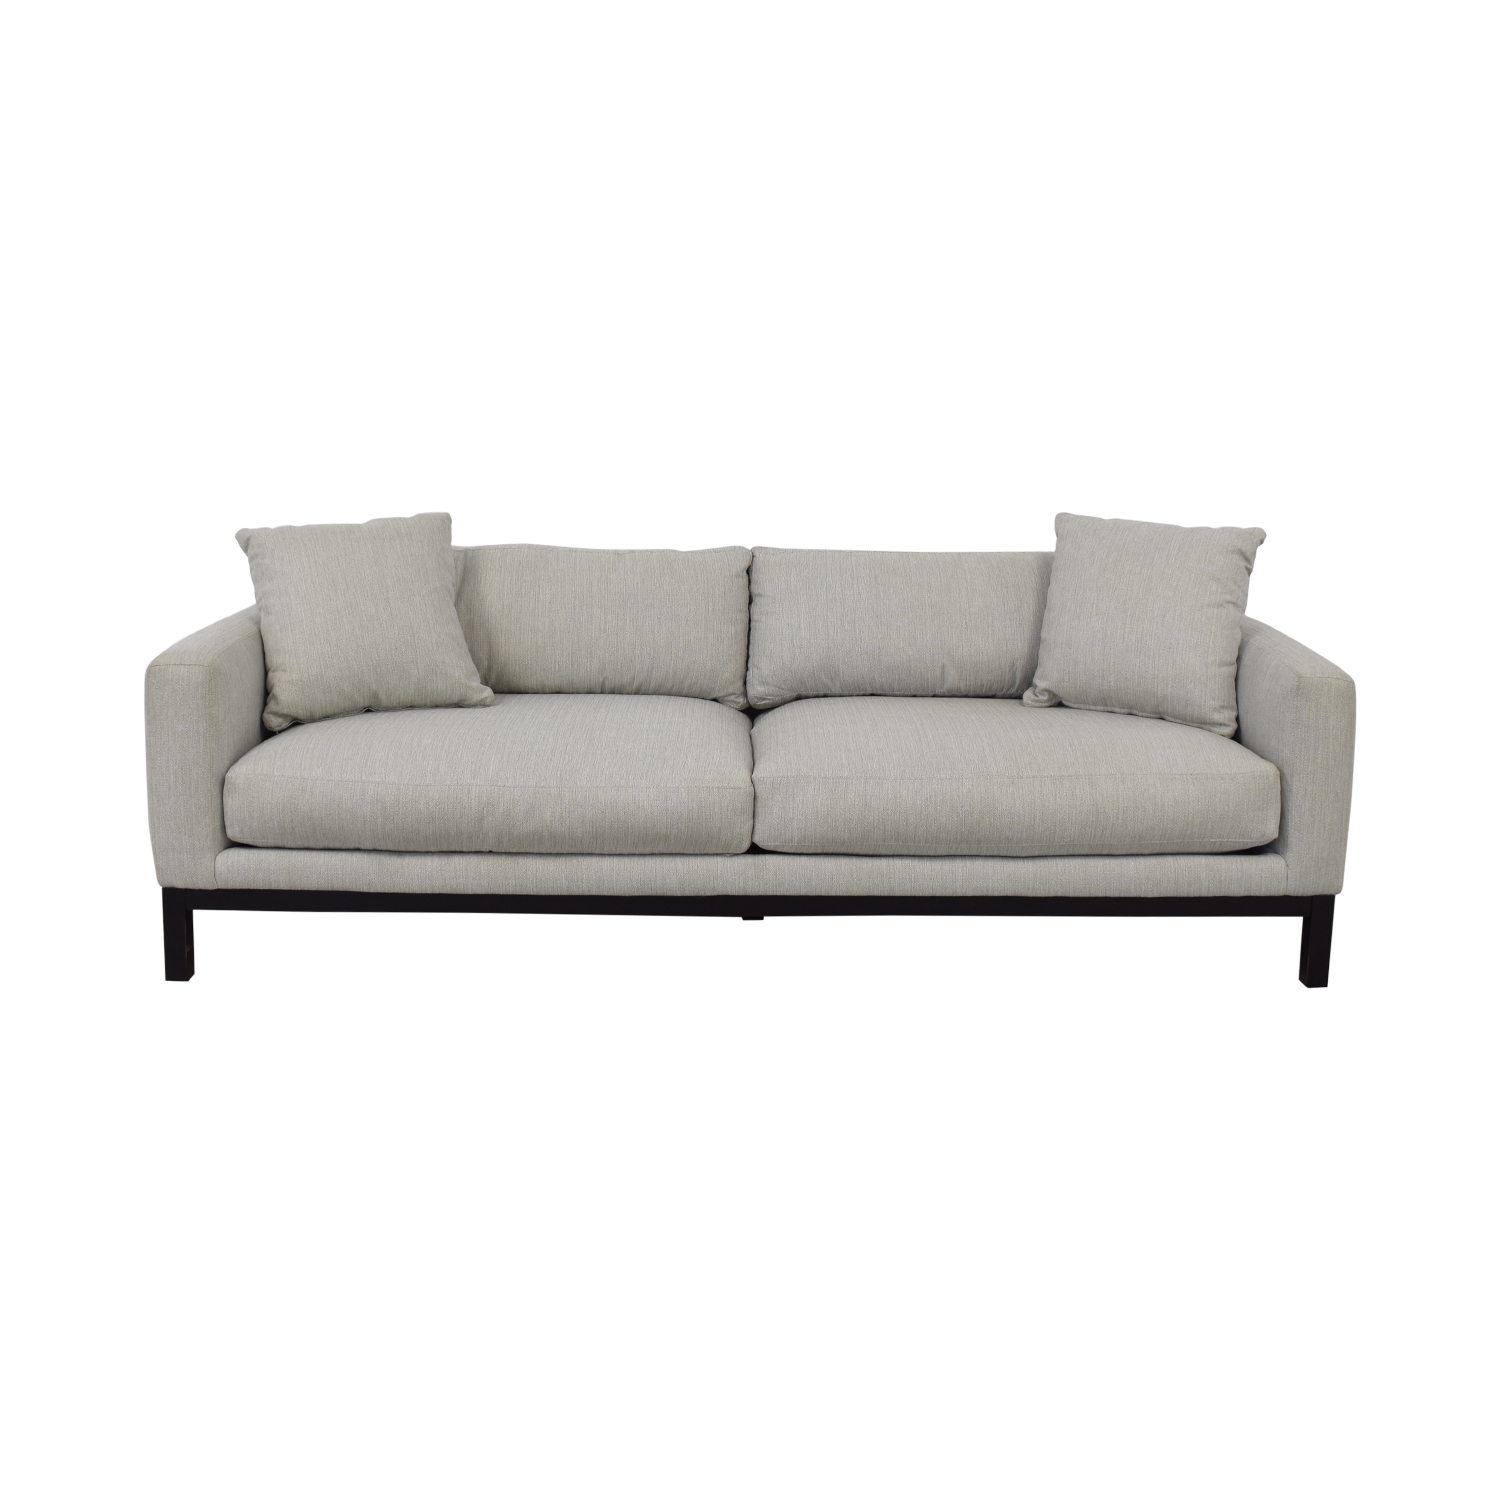 Rowe Furniture Rowe Furniture Contemporary Light Gray Upholstered Sofa Classic Sofas